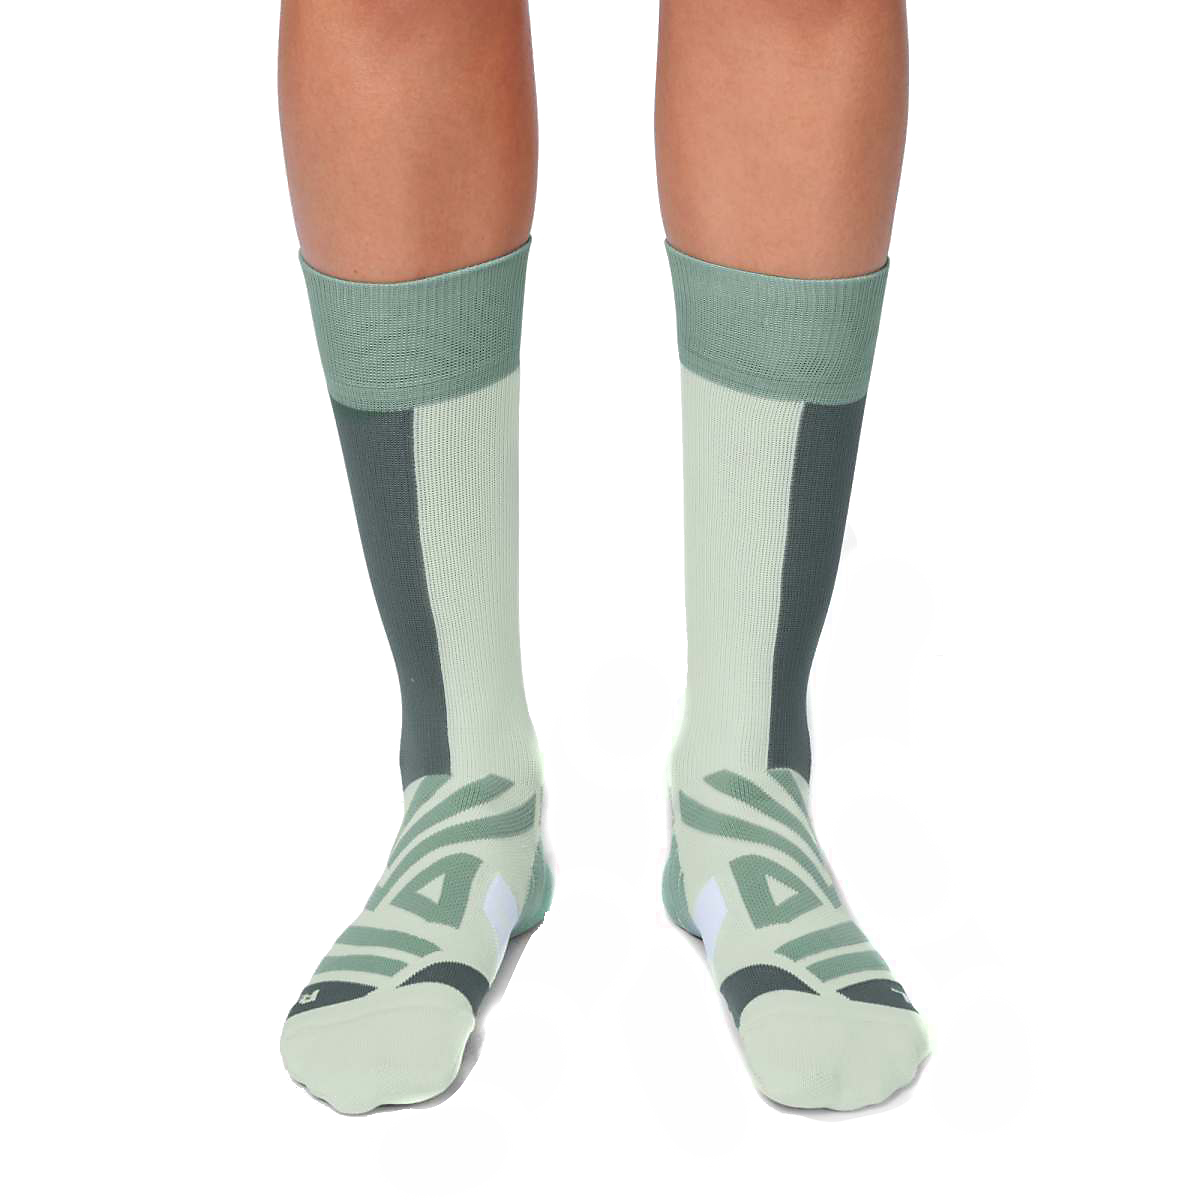 Women's On High Sock - Color: Mineral/White - Size: XS, Mineral/White, large, image 3